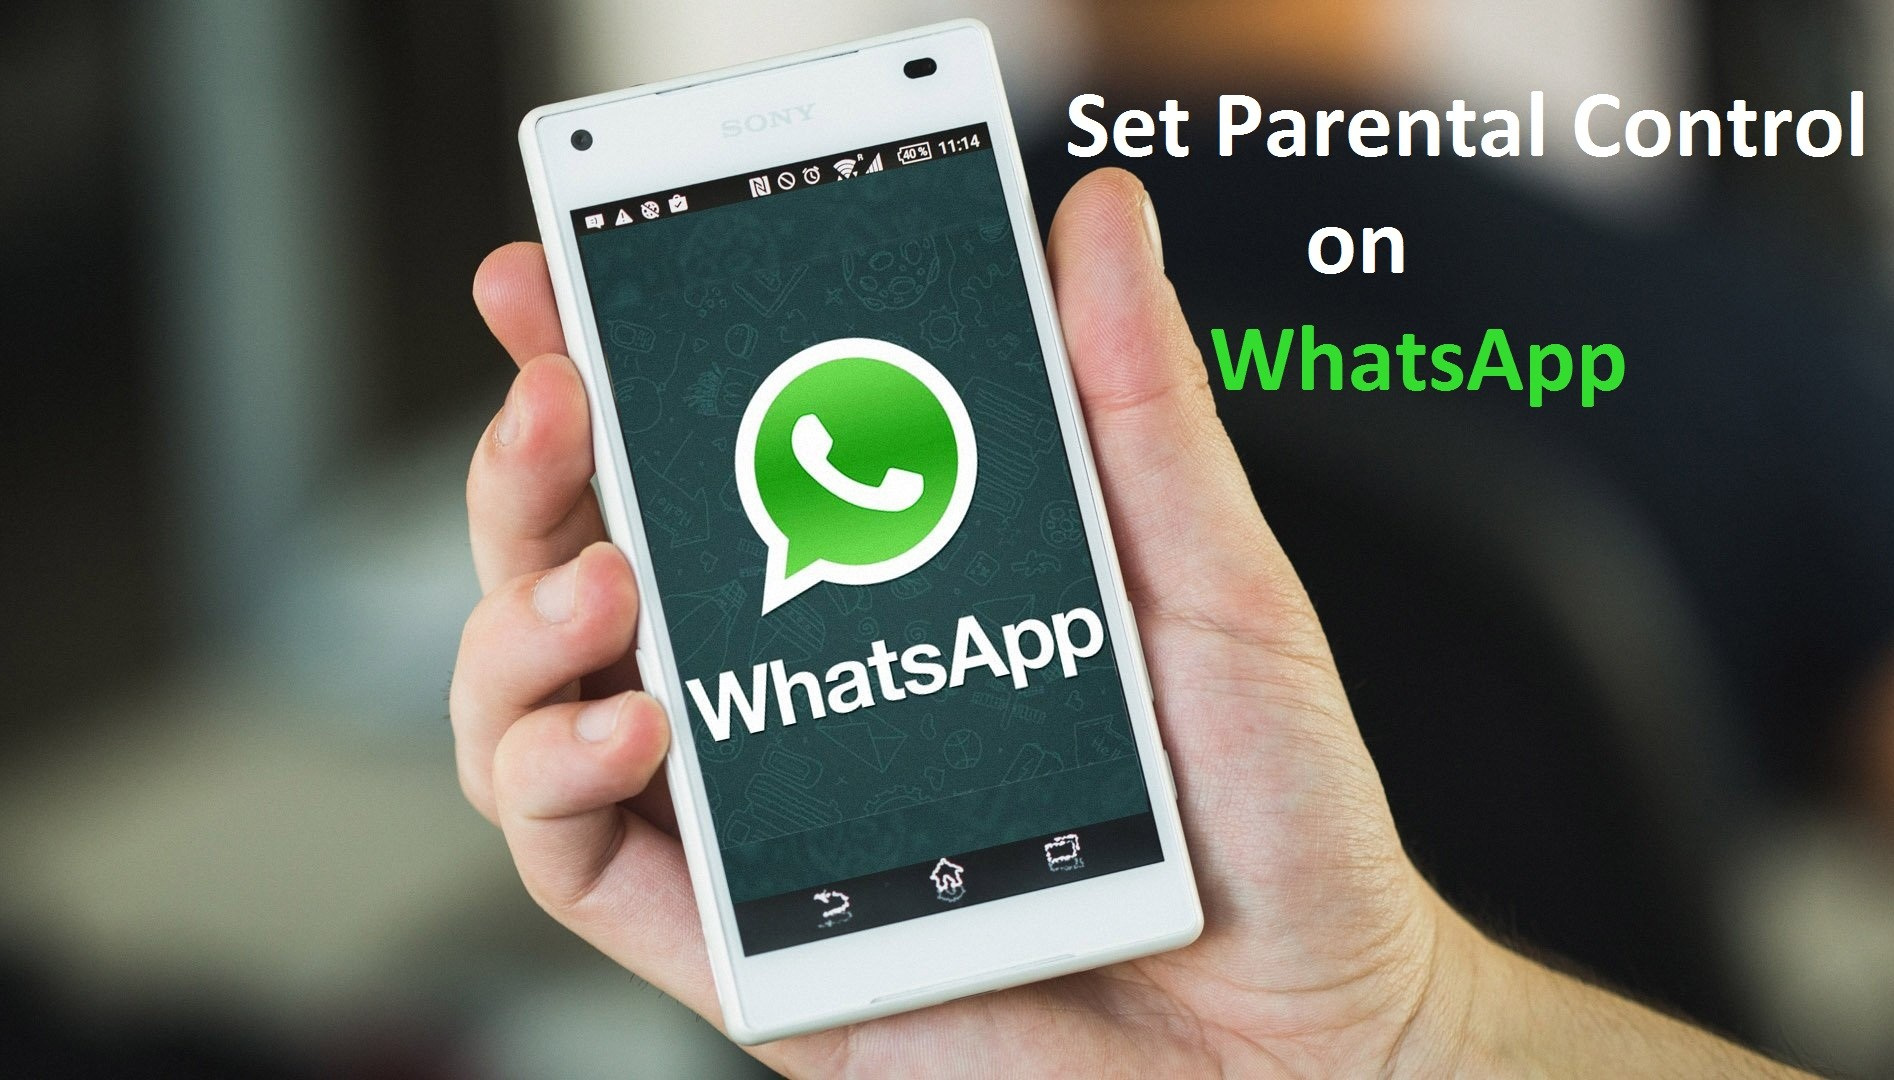 How to Set Parental Control on WhatsApp - wikigain